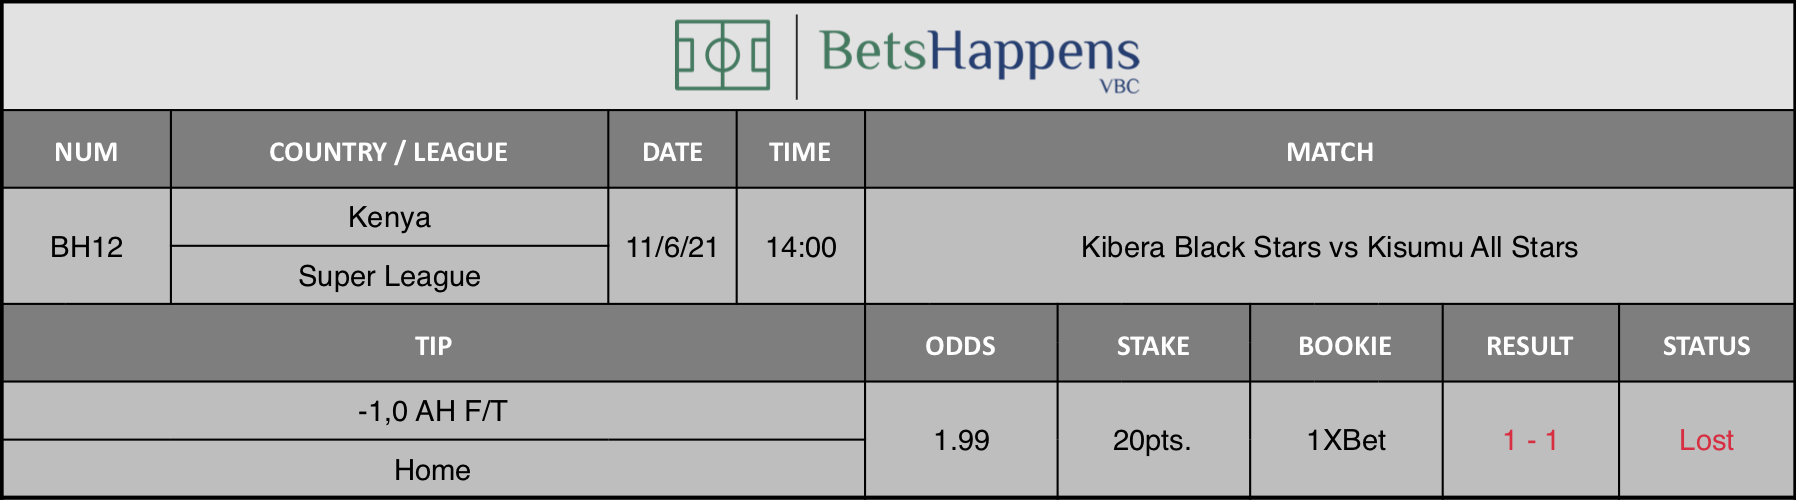 Results of our tip for the Kibera Black Stars vs Kisumu All Stars Match -1,0 AH F/T Home is recommended.